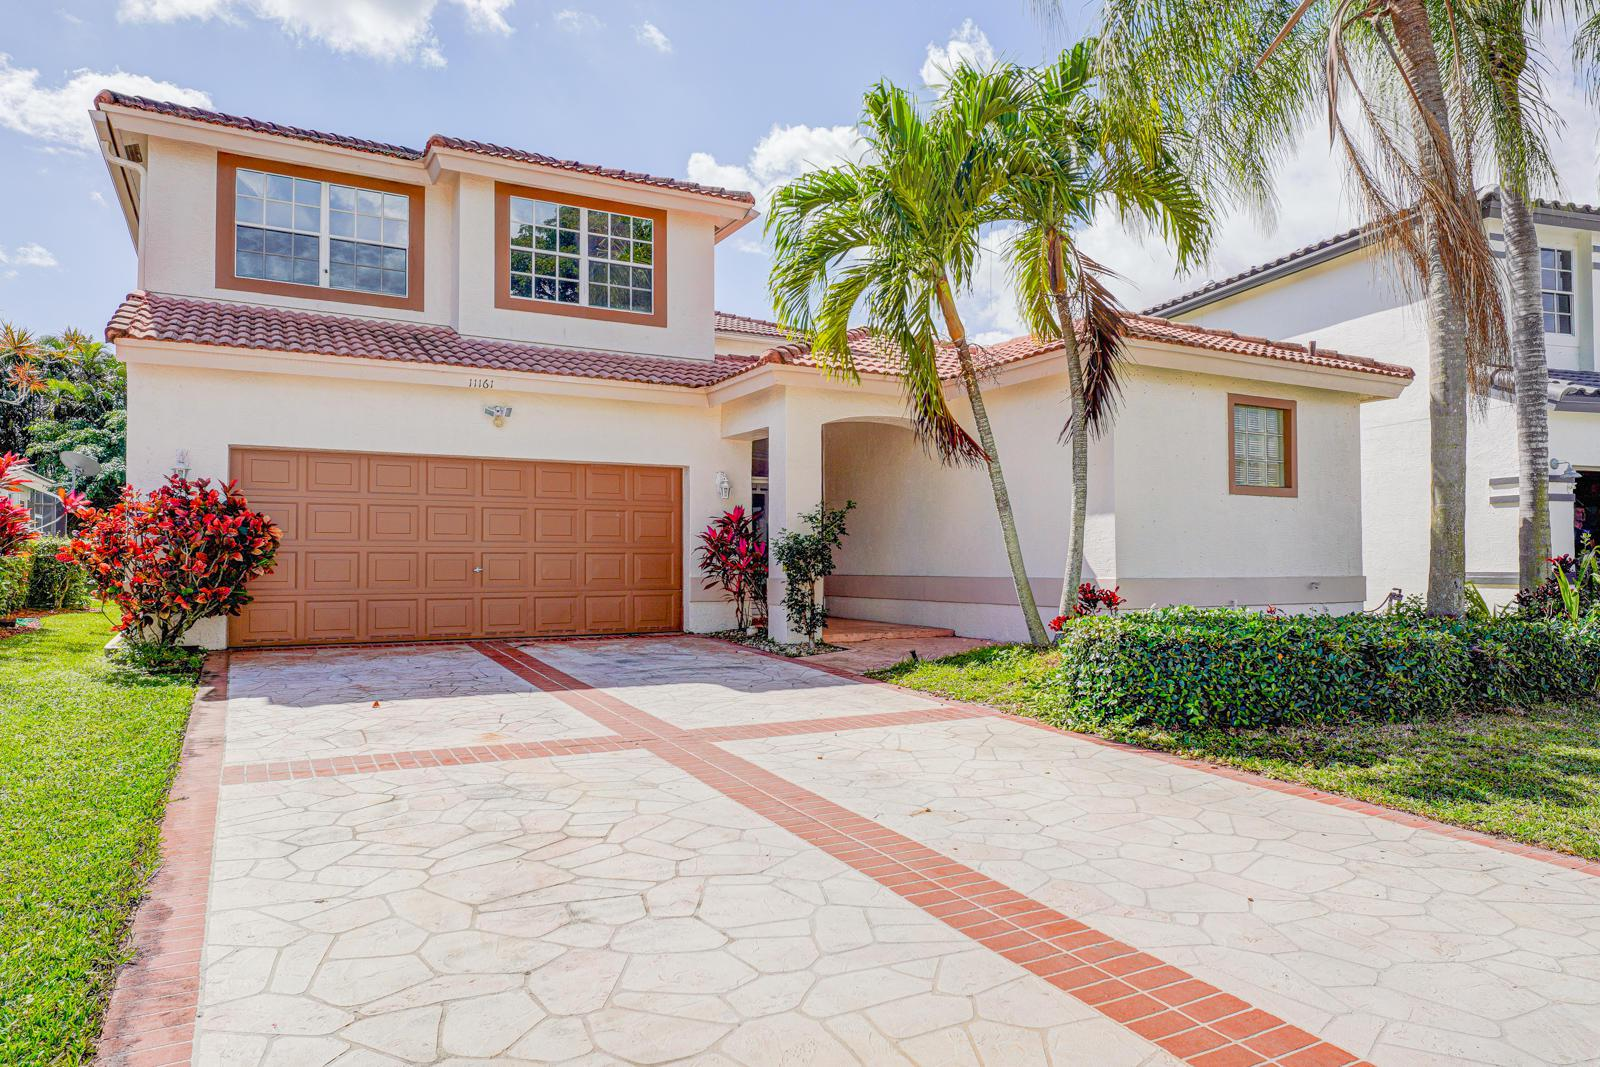 Boca Raton: Harbour Springs - listed at 420,000 (11161 Harbour Springs Cir)